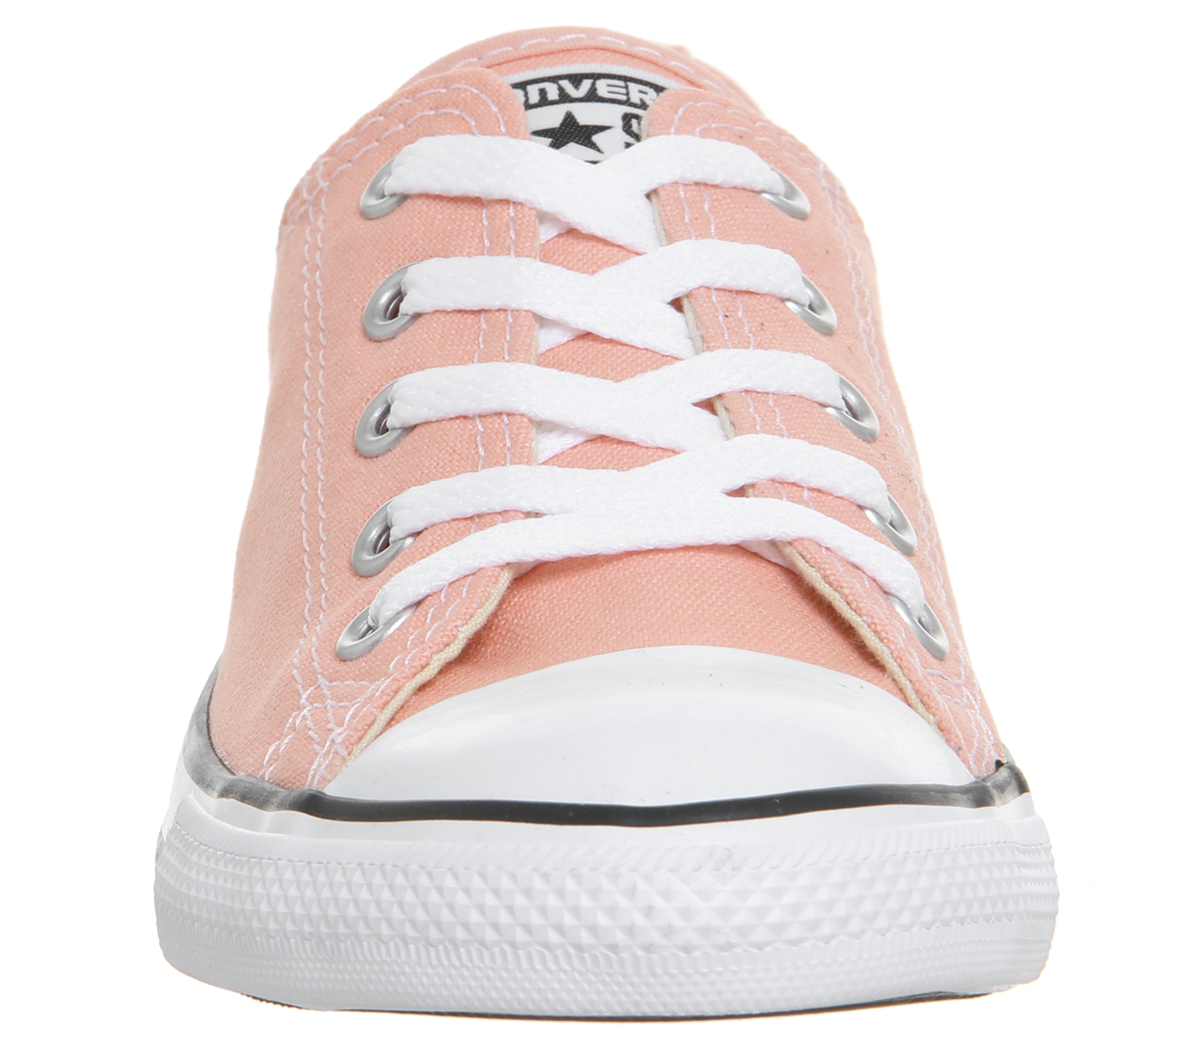 bb601a2216a Sentinel Womens Converse All Star Dainty Trainers Pale Coral Trainers Shoes